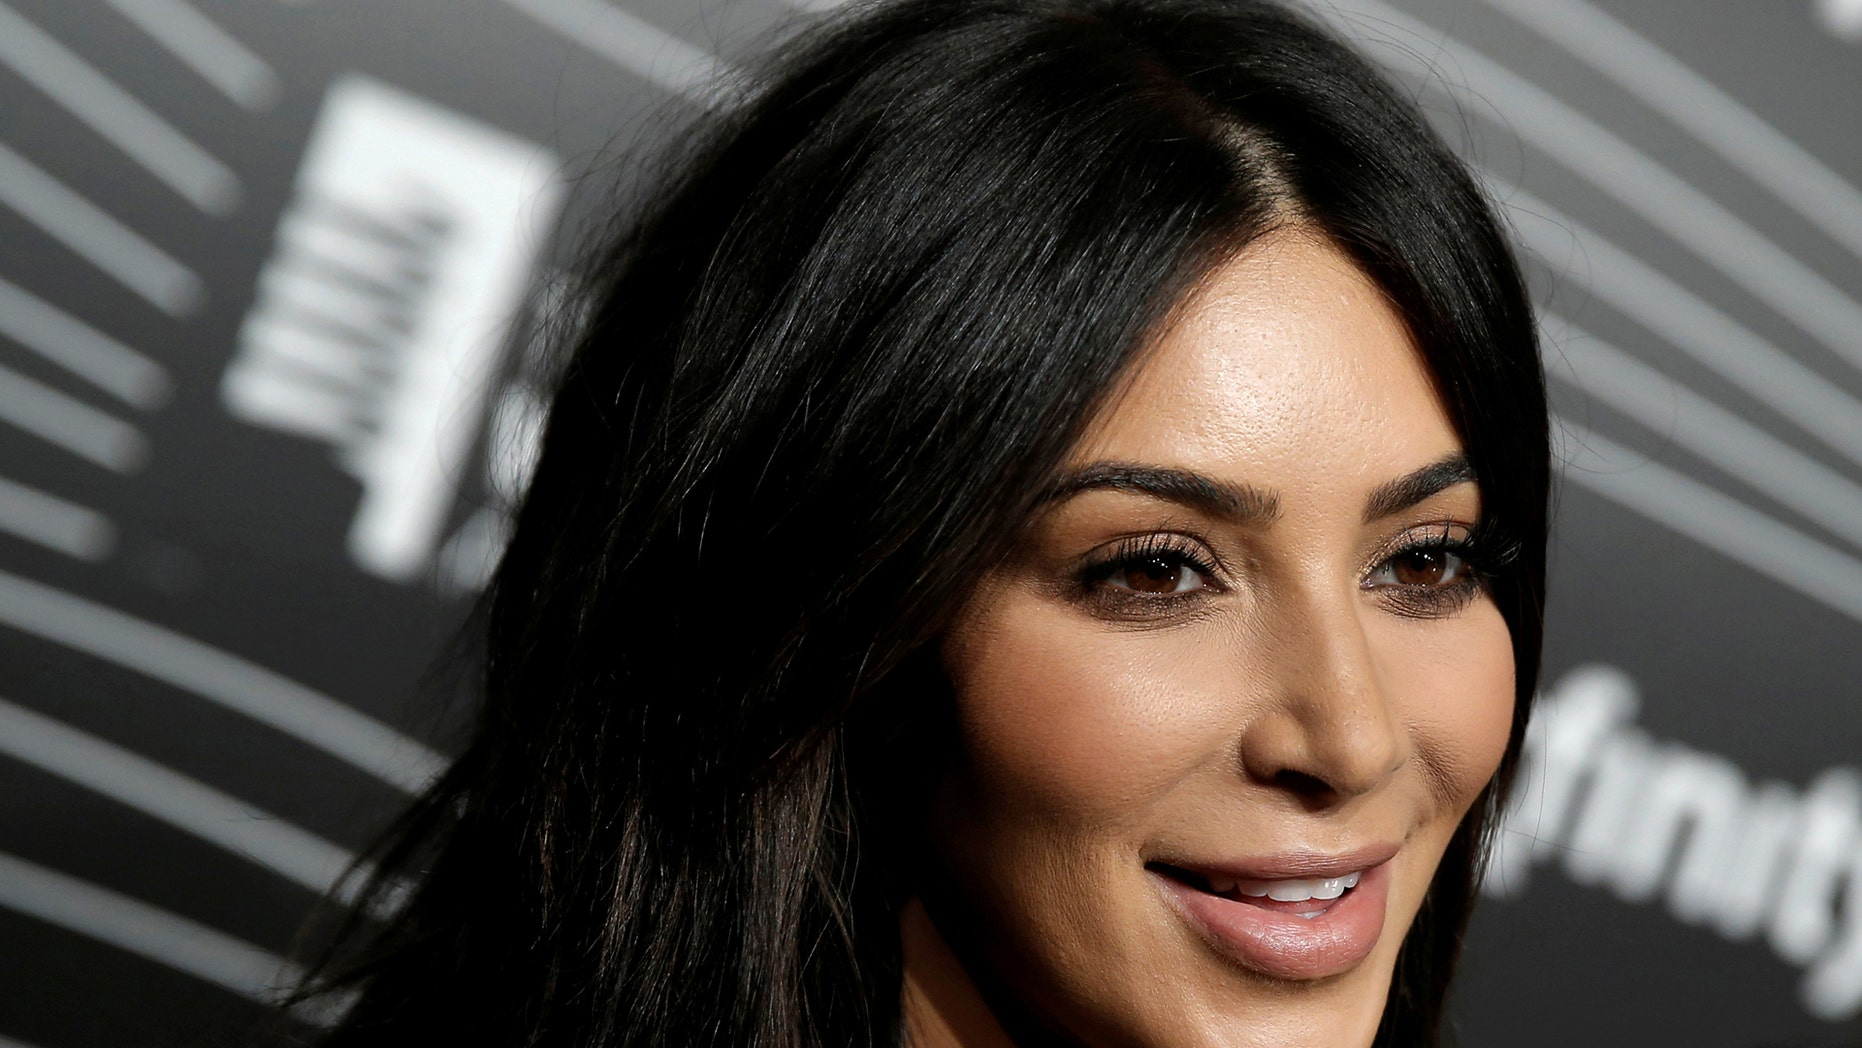 Kim Kardashian West participates in a television interview as she arrives for the 20th Annual Webby Awards in Manhattan, New York, U.S., May 16, 2016. REUTERS/Mike Segar/File Photo - RTSRT2M